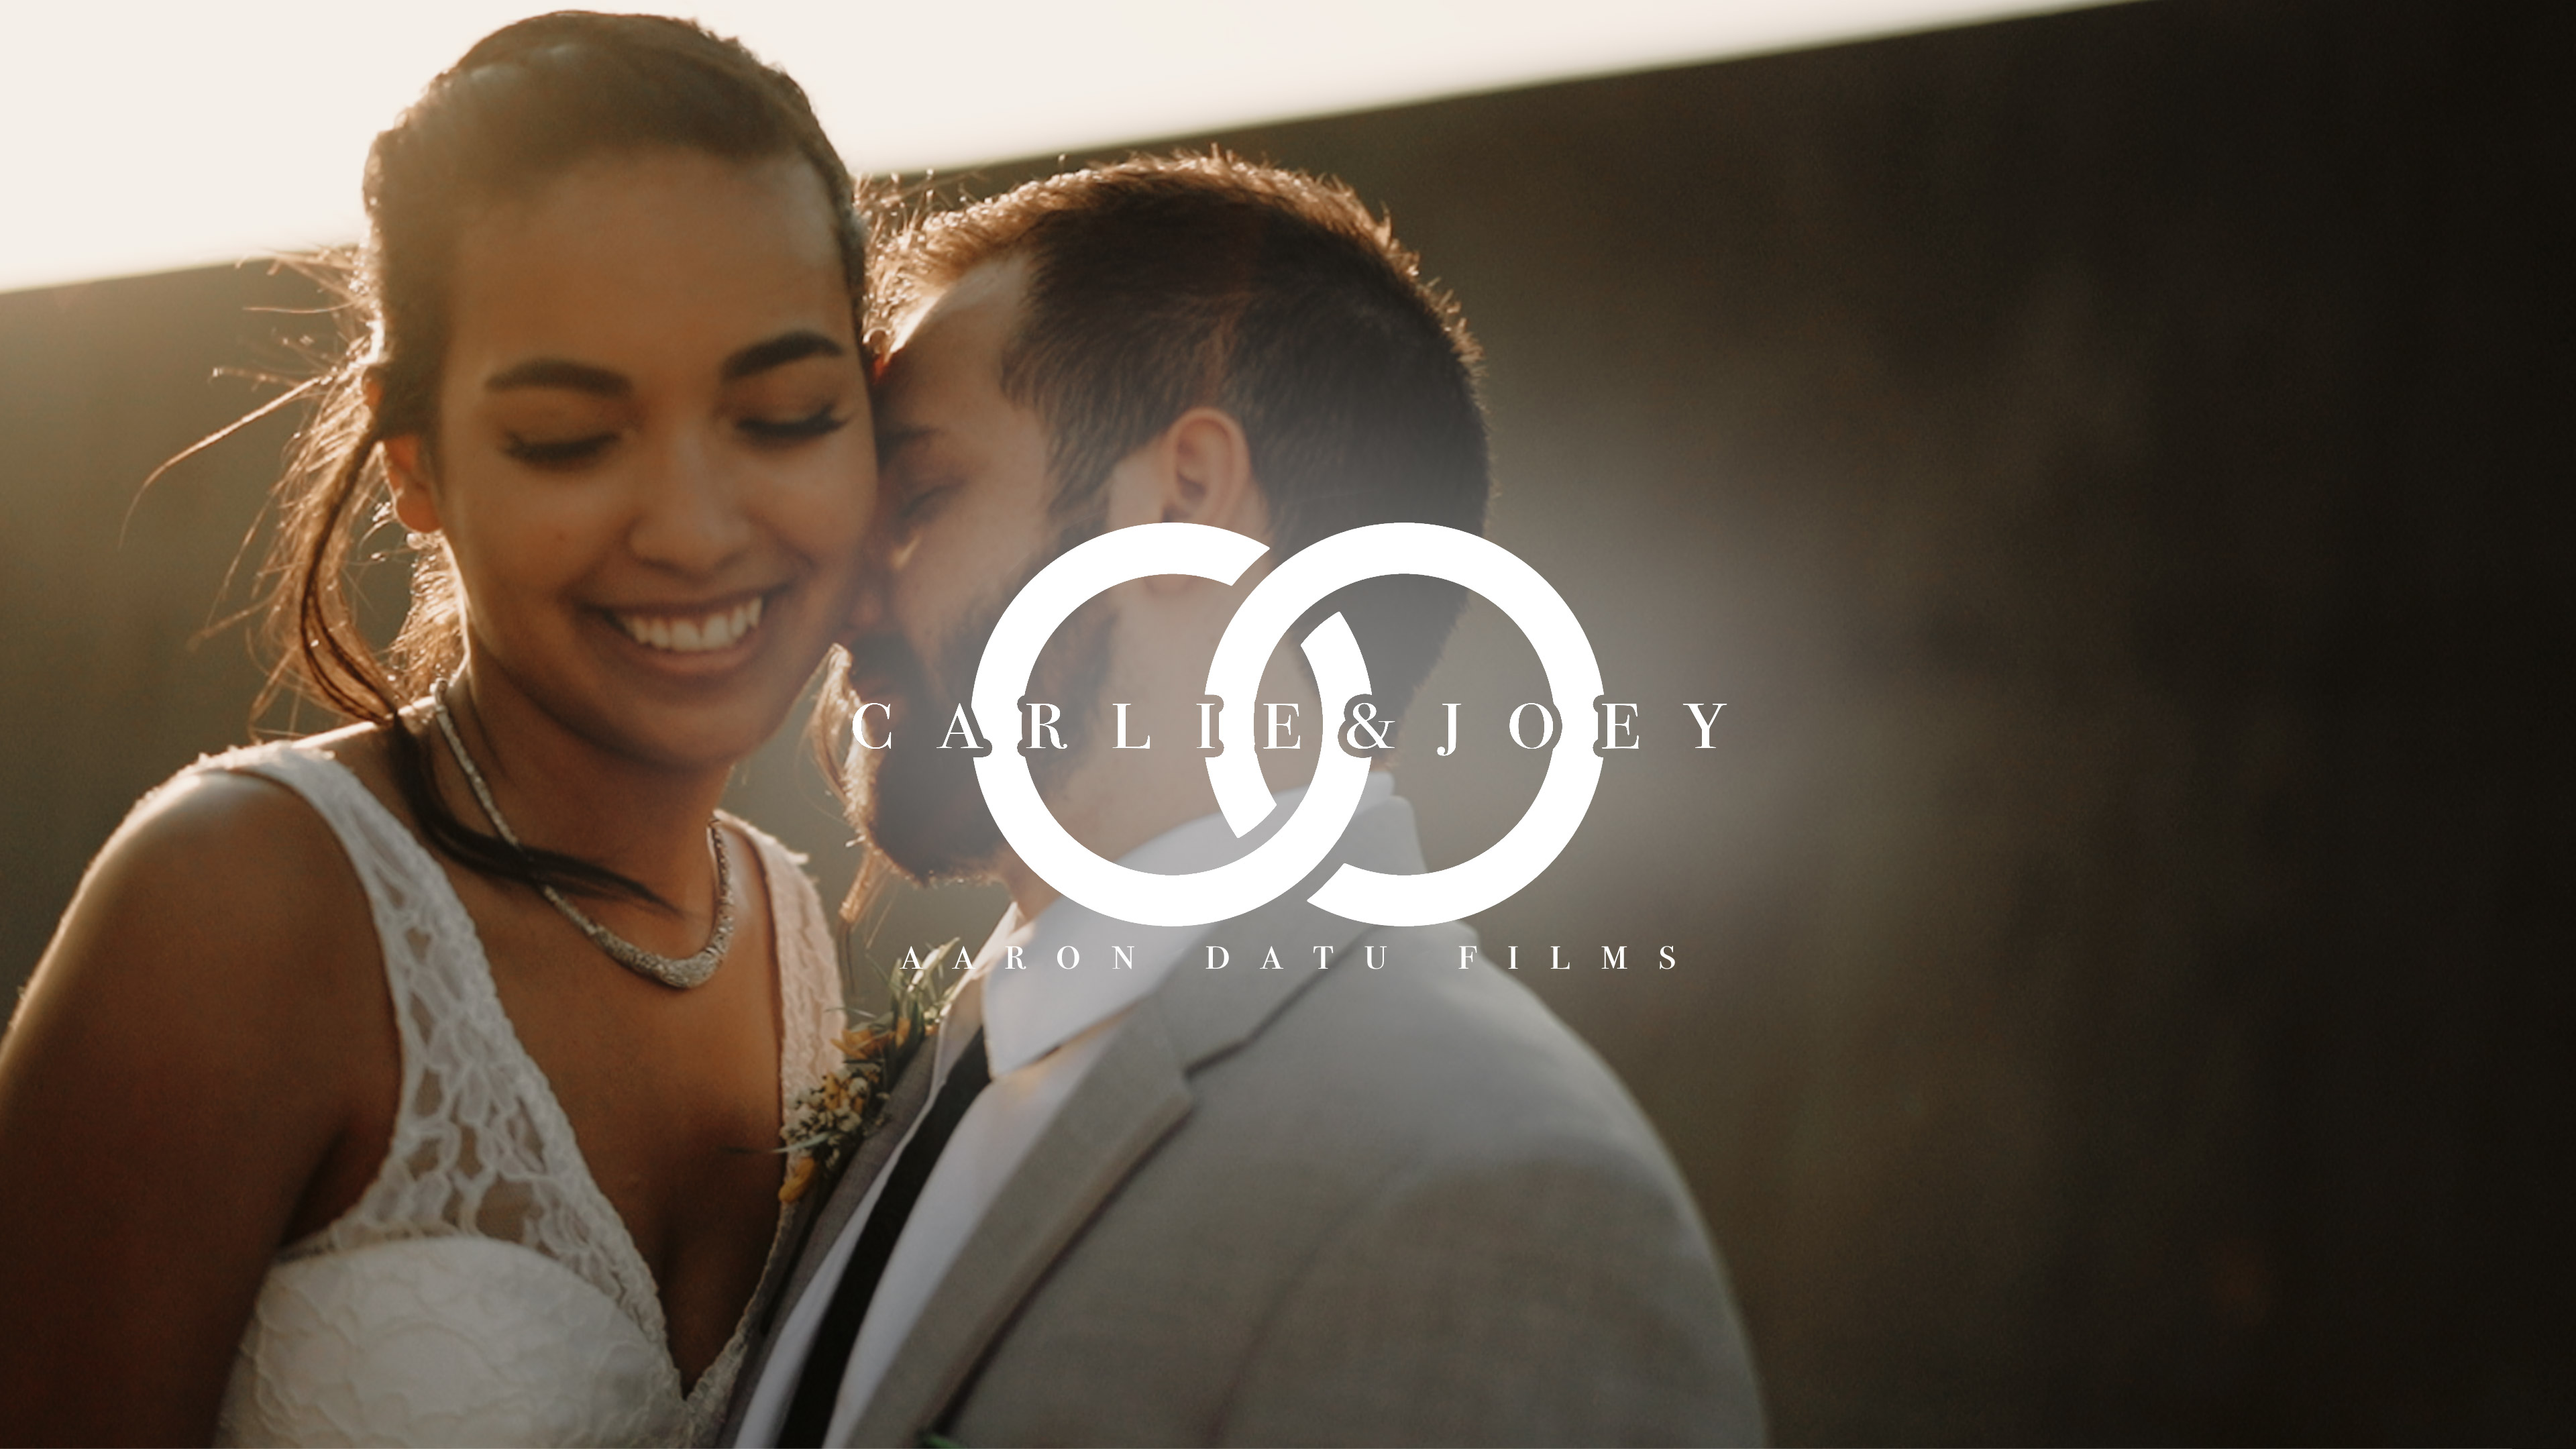 Carlie + Joey | Wichita, Kansas | a venue